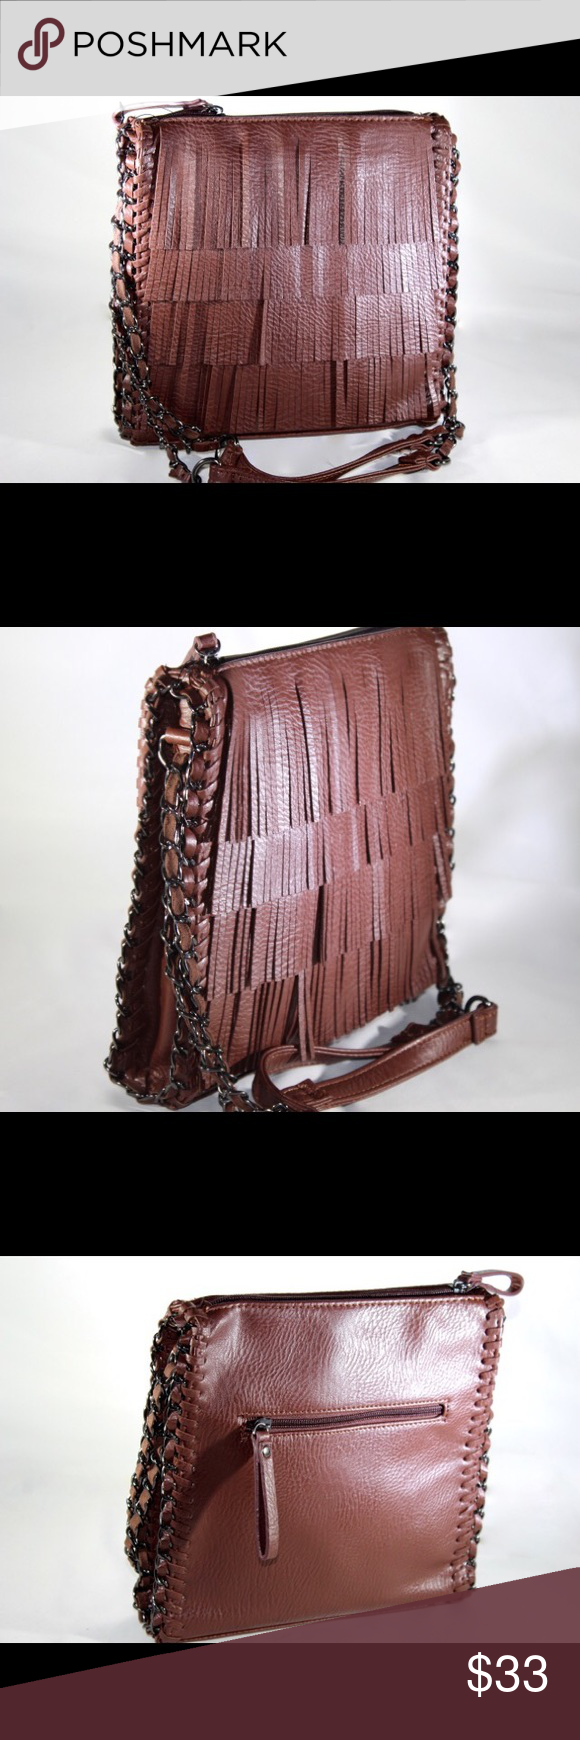 Sondra Roberts Fringed Faux Leather Shoulder Bag. Boho-chic petite faux leader shoulder bag. With one inside zip pocket, two inside open pockets, back zip pockets and front fringe detail. Sondra Roberts  Bags Shoulder Bags